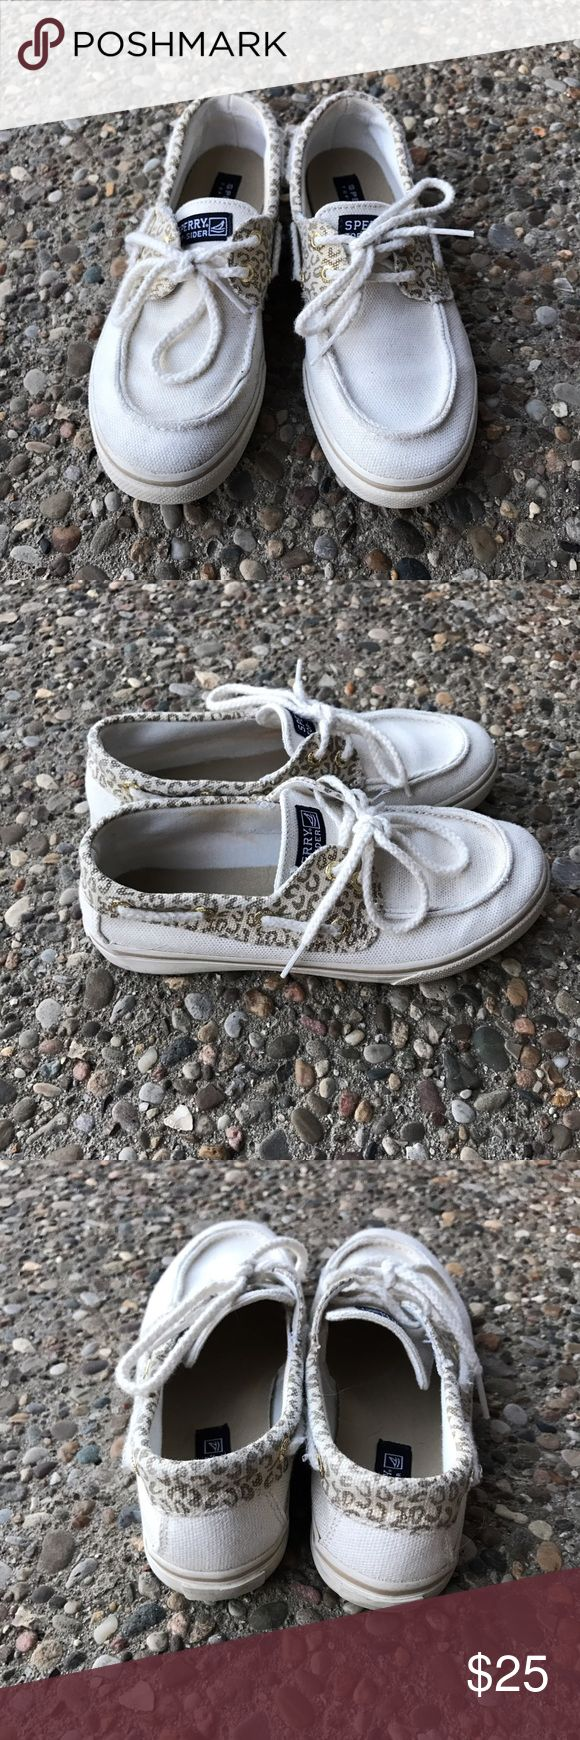 Authentic White Sperrys with Gold Leopard Print Completely authentic white sperrys with metallic gold and white leopard accents. Worn 5-6 times. Sperry Top-Sider Shoes